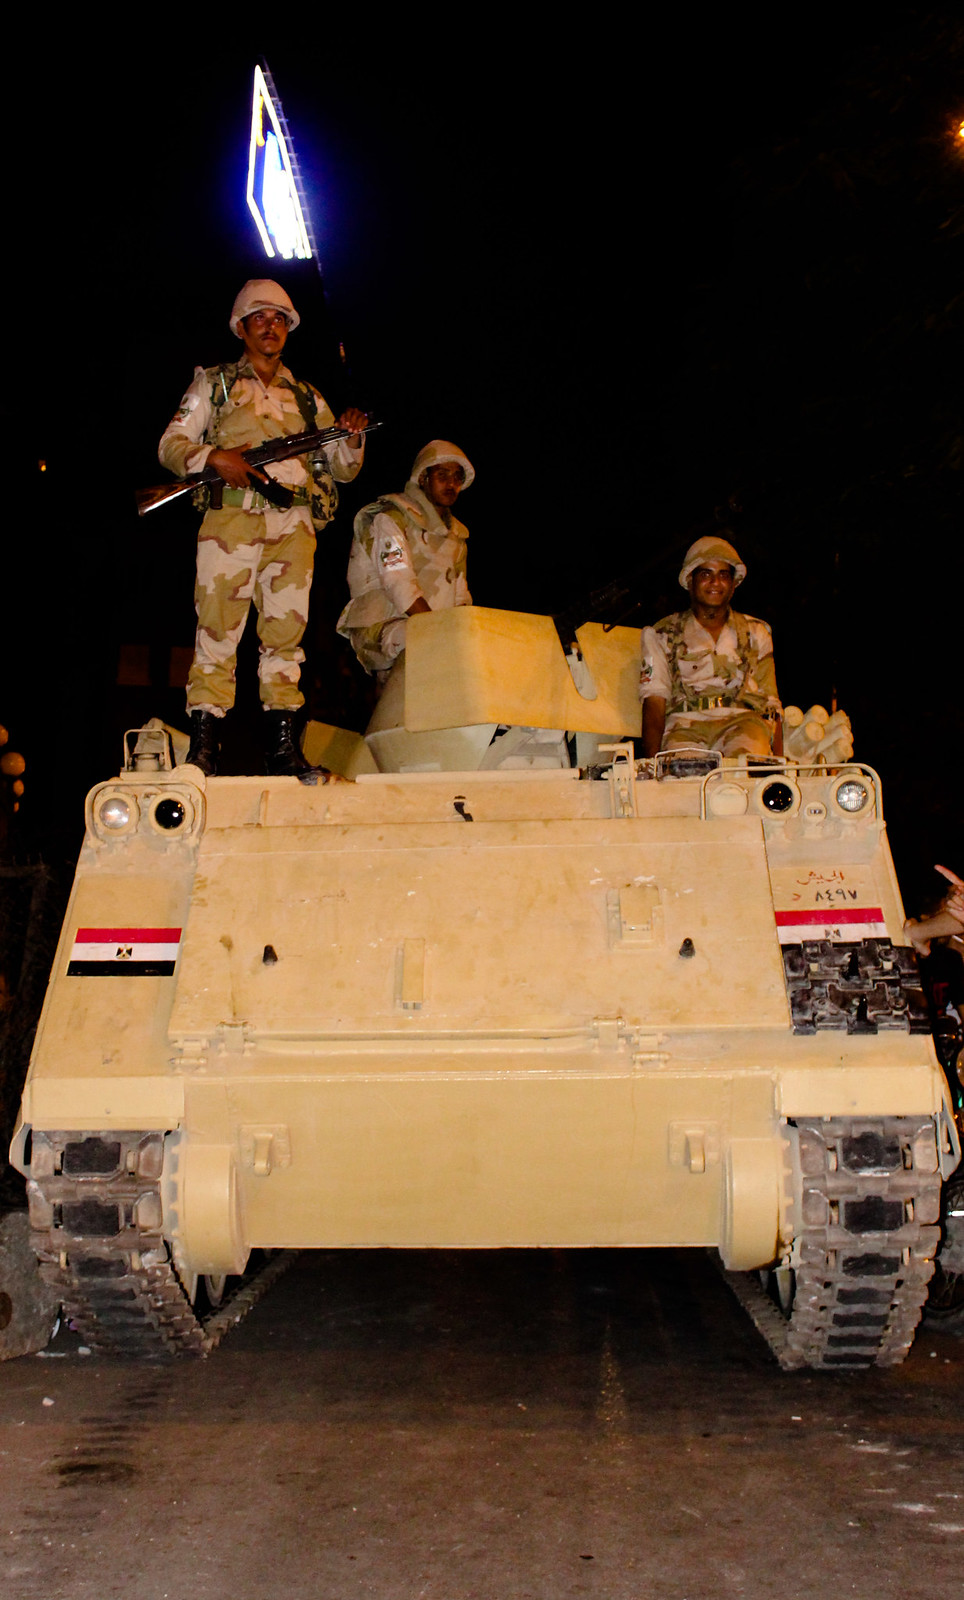 Armée Egyptienne/Egyptian Armed Forces - Page 4 9224321590_d6d7f0308c_h